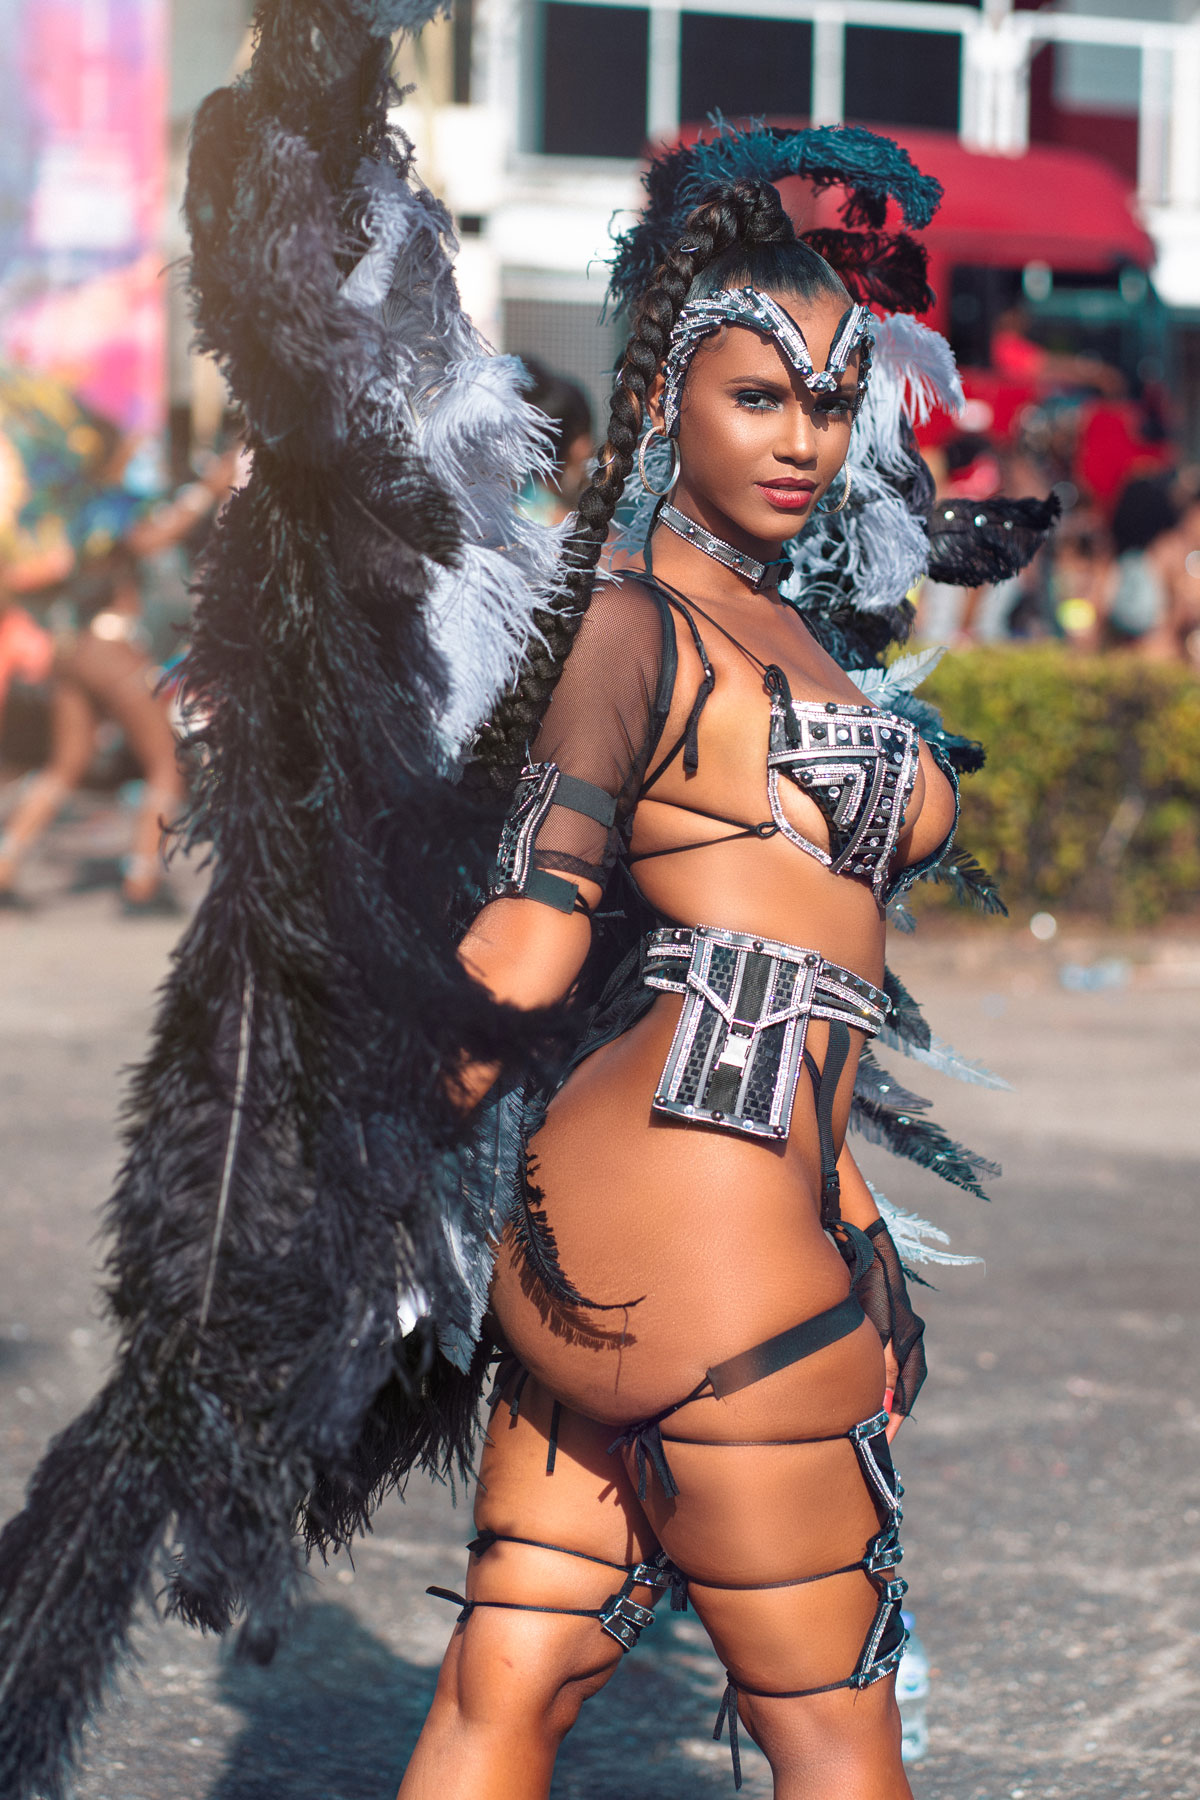 Woman in carnival outfit